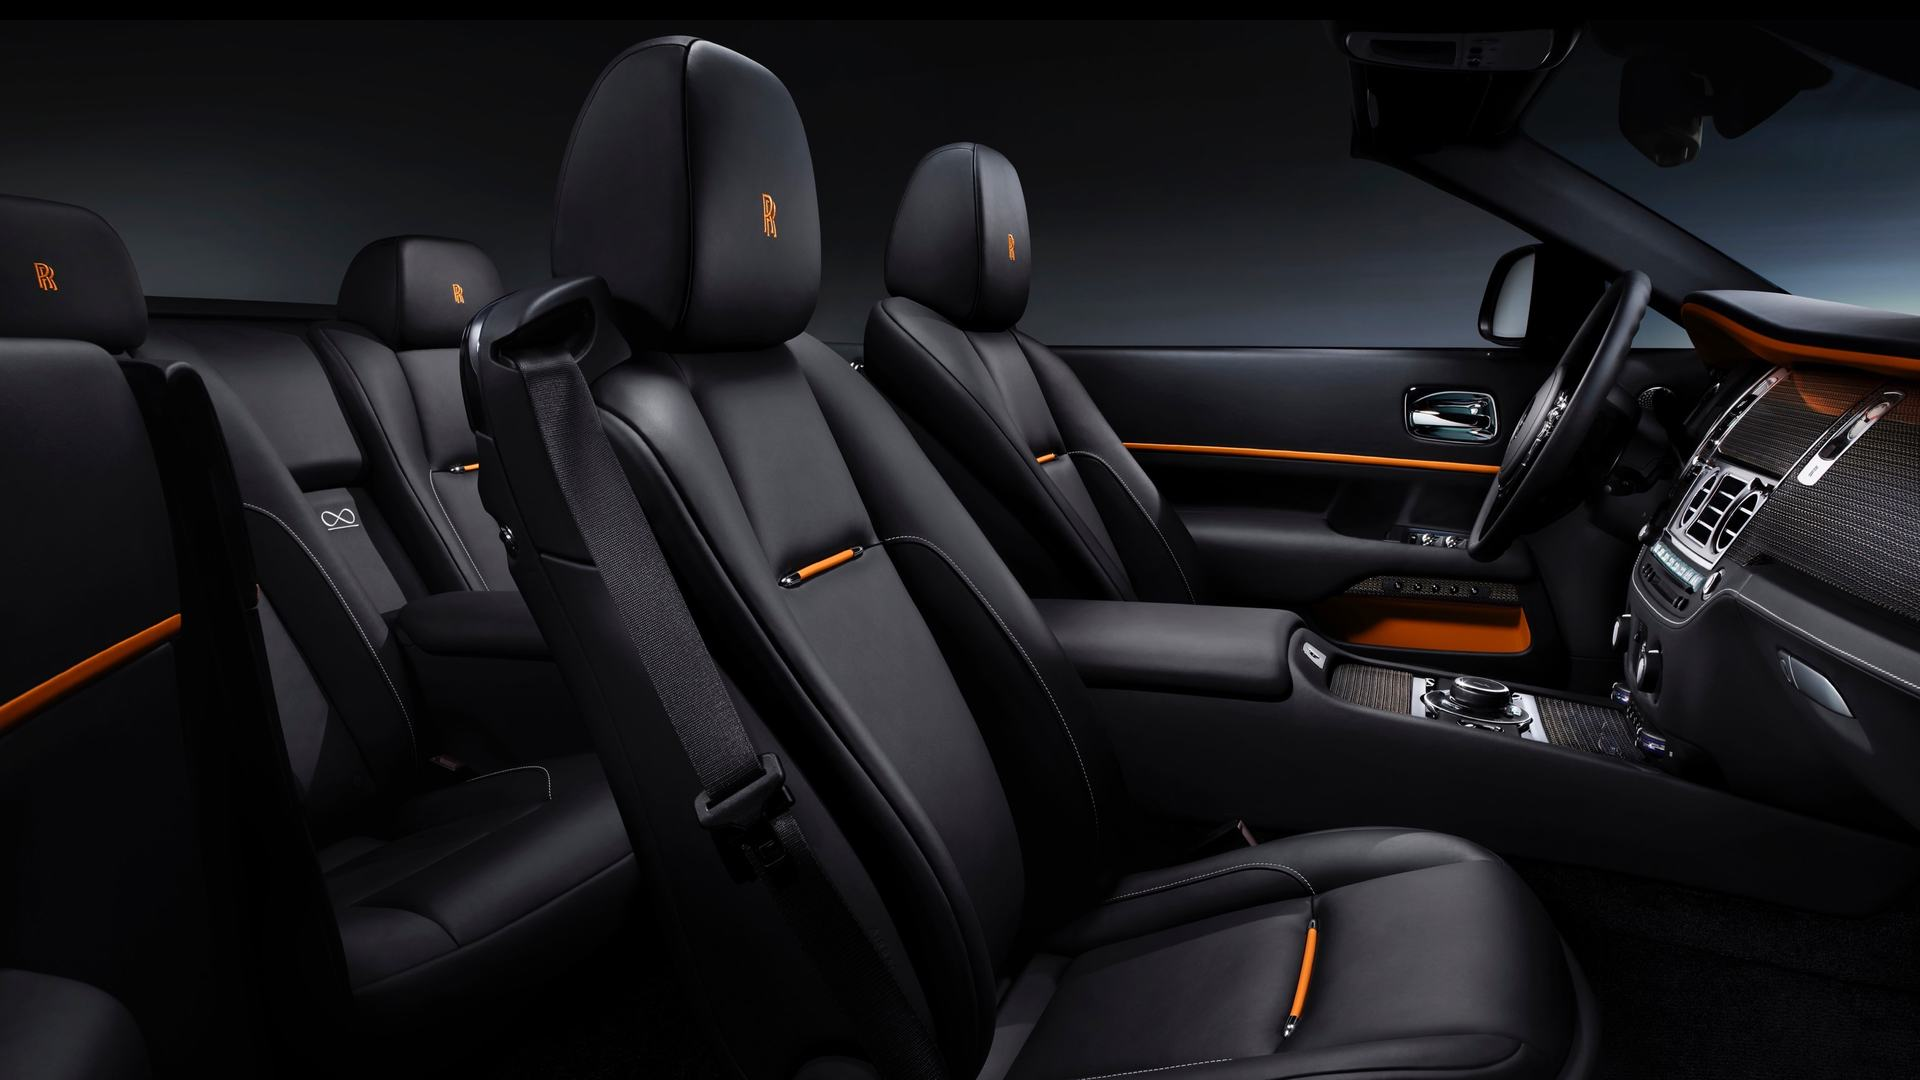 A side shot of a Rolls-Royce Black Badge Dawn showcasing the seats and interior.